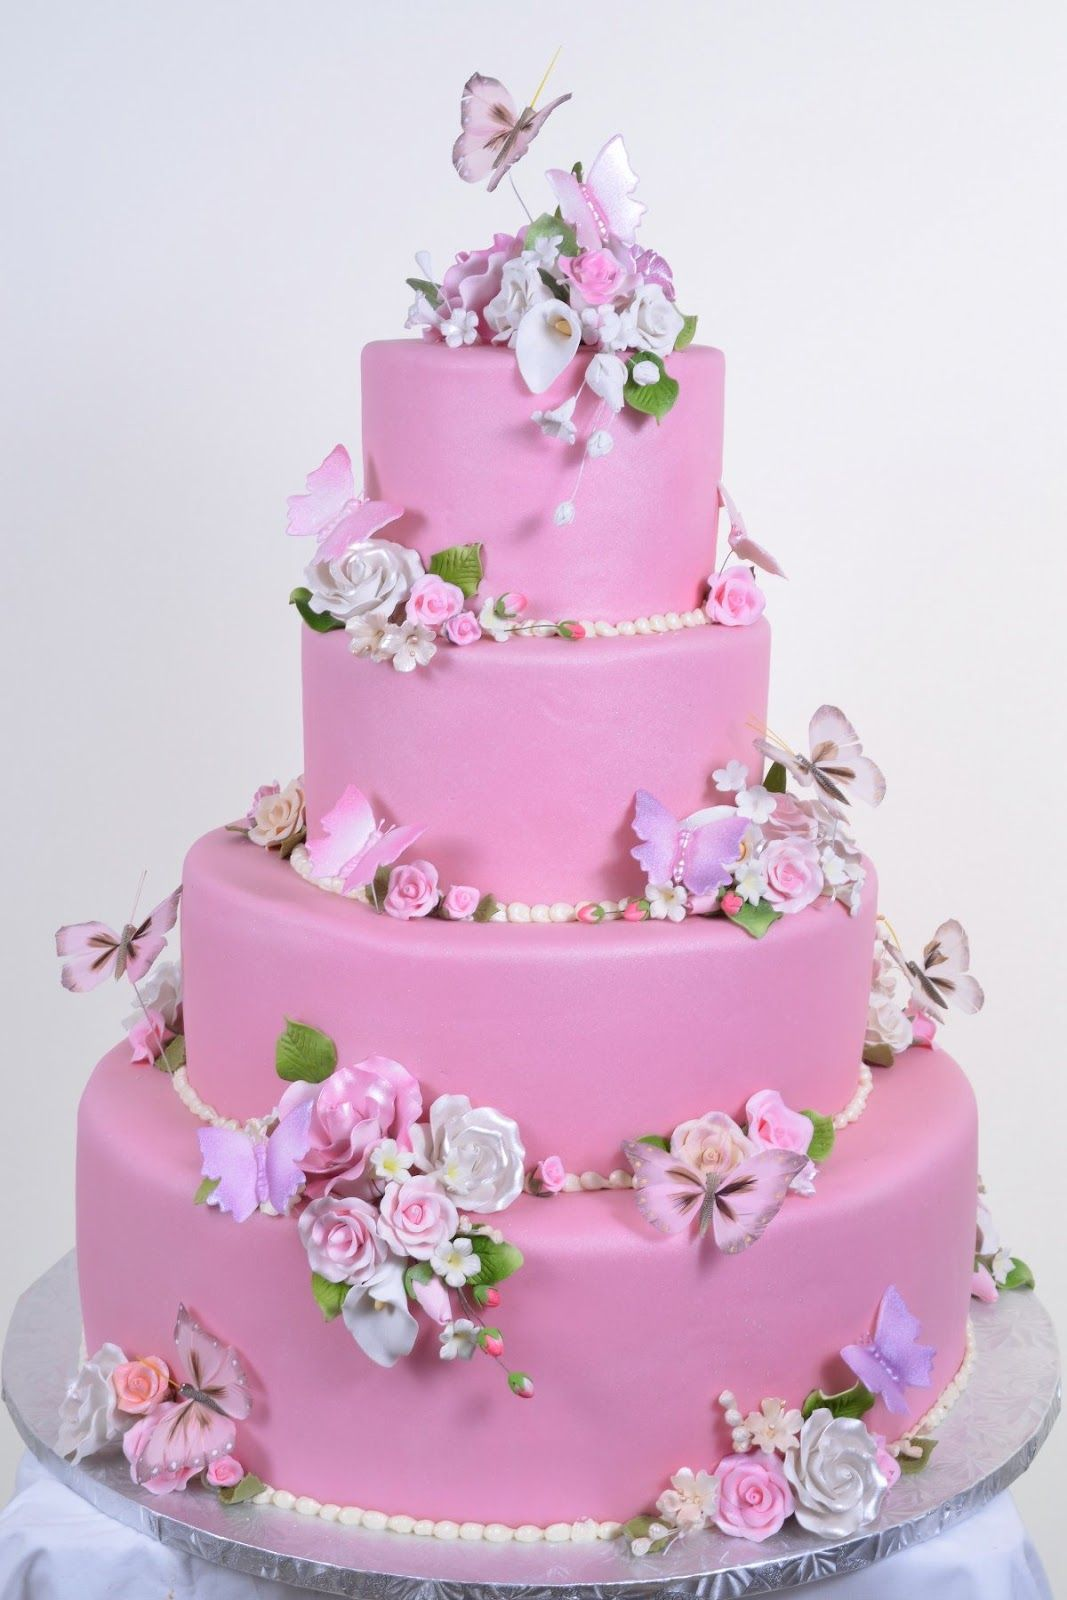 Wedding Cakes Pictures: Pink Butterfly Wedding Cakes | Let Them Eat ...